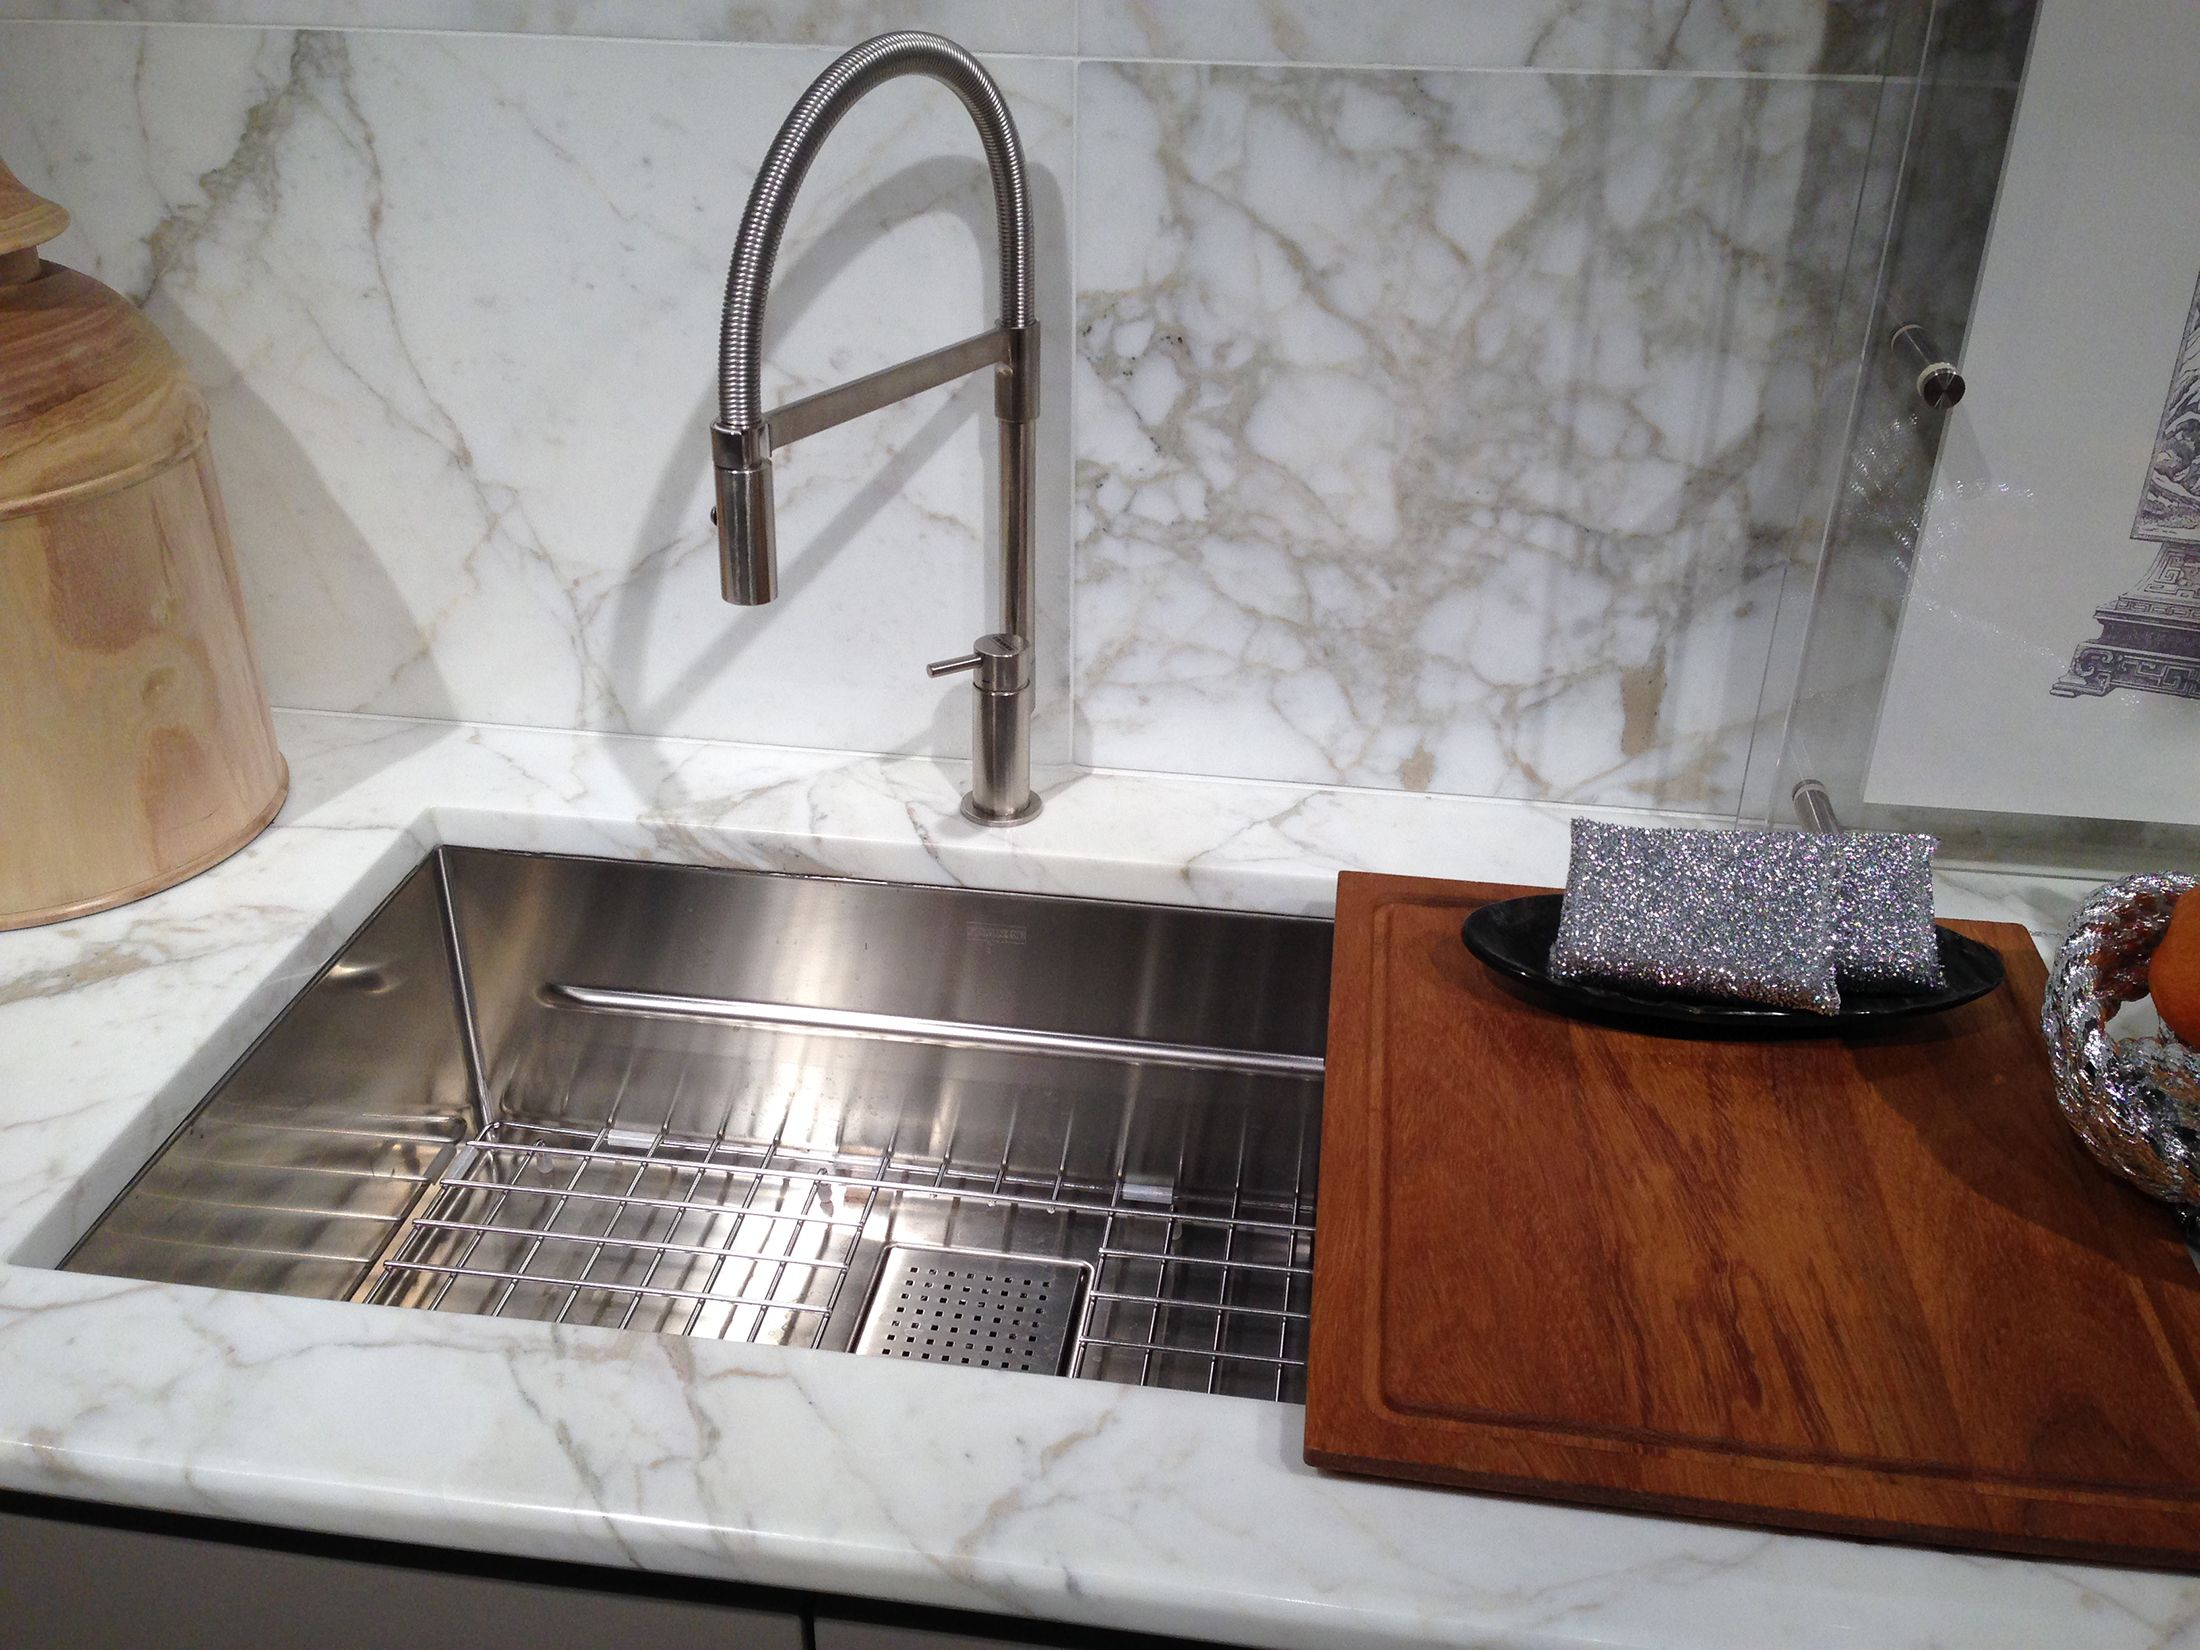 franke authorized showrooms chicago kitchen faucets Franke Peak sink shown with cutting board and bottom grid and NEW pull down faucet in chrome on display in Markison Birch Showroom Chicago IL